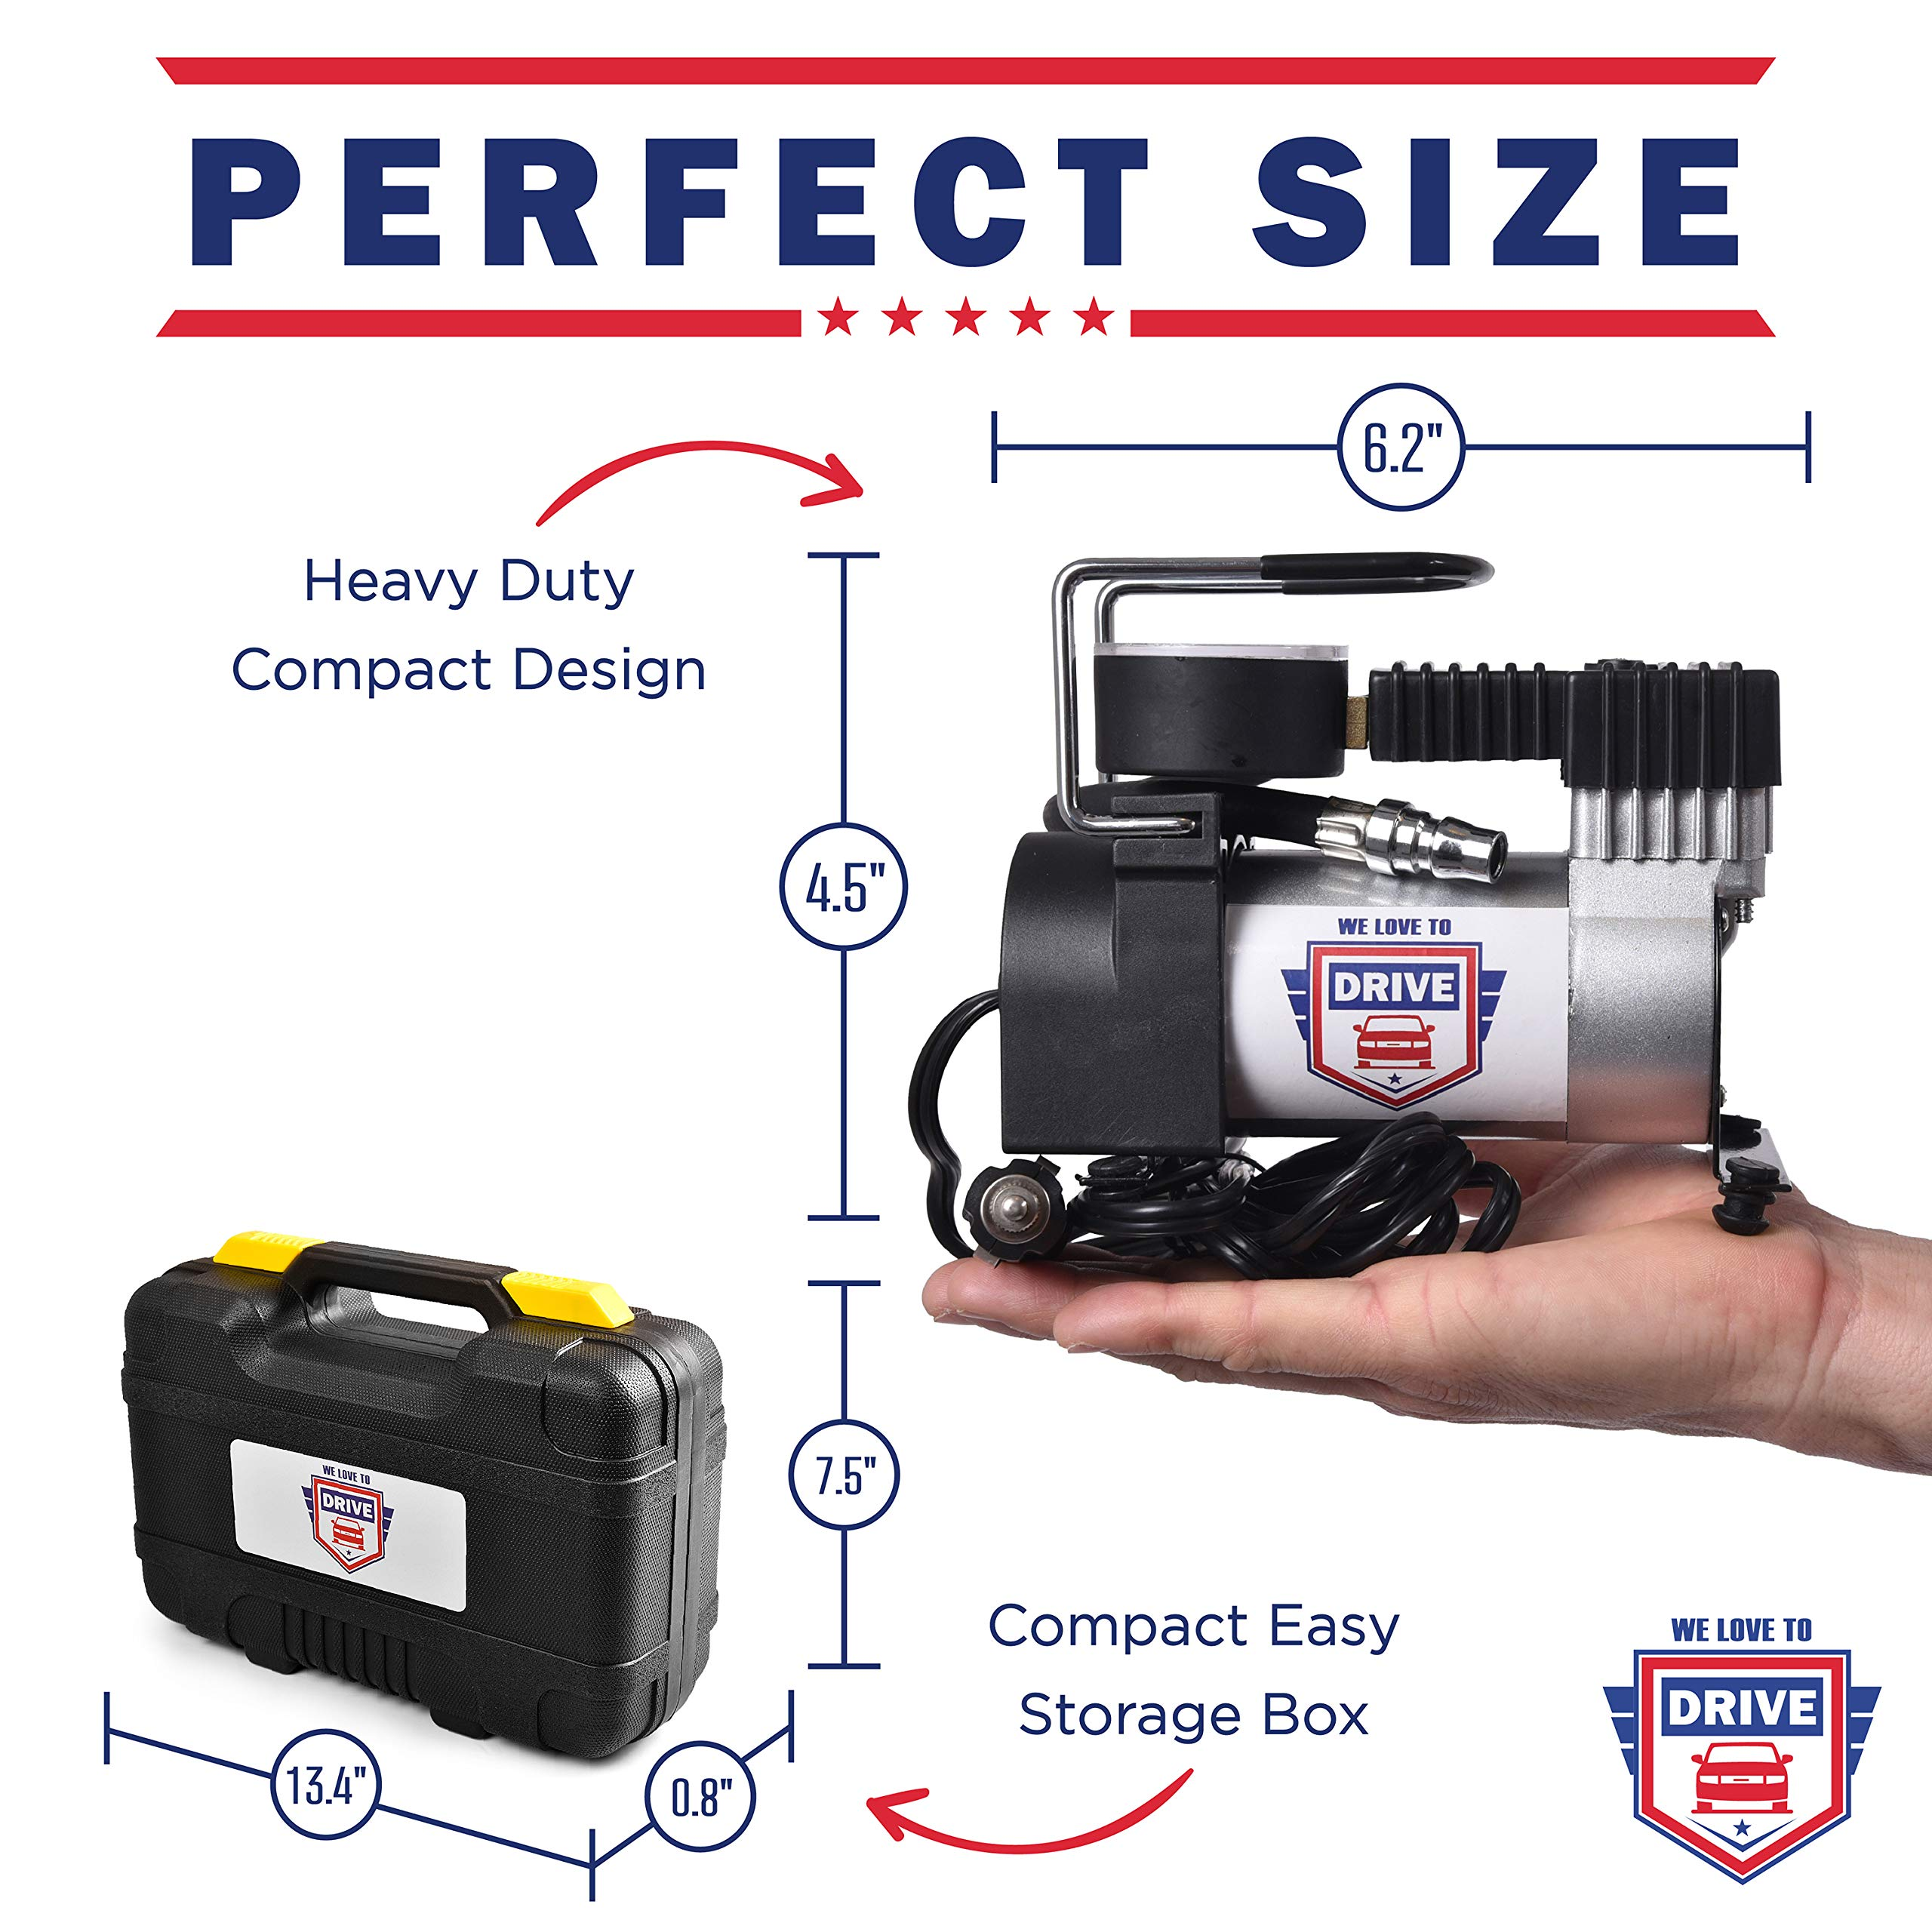 12V DC Best Air Compressor Tire Inflator with Gauge – 150 PSI Portable Air Pump for Car Tires, Trucks & Inflatables – DOUBLE BONUS Tire Puncture Repair Kit & Carry Case – by We Love to Drive by WE LOVE TO DRIVE (Image #5)